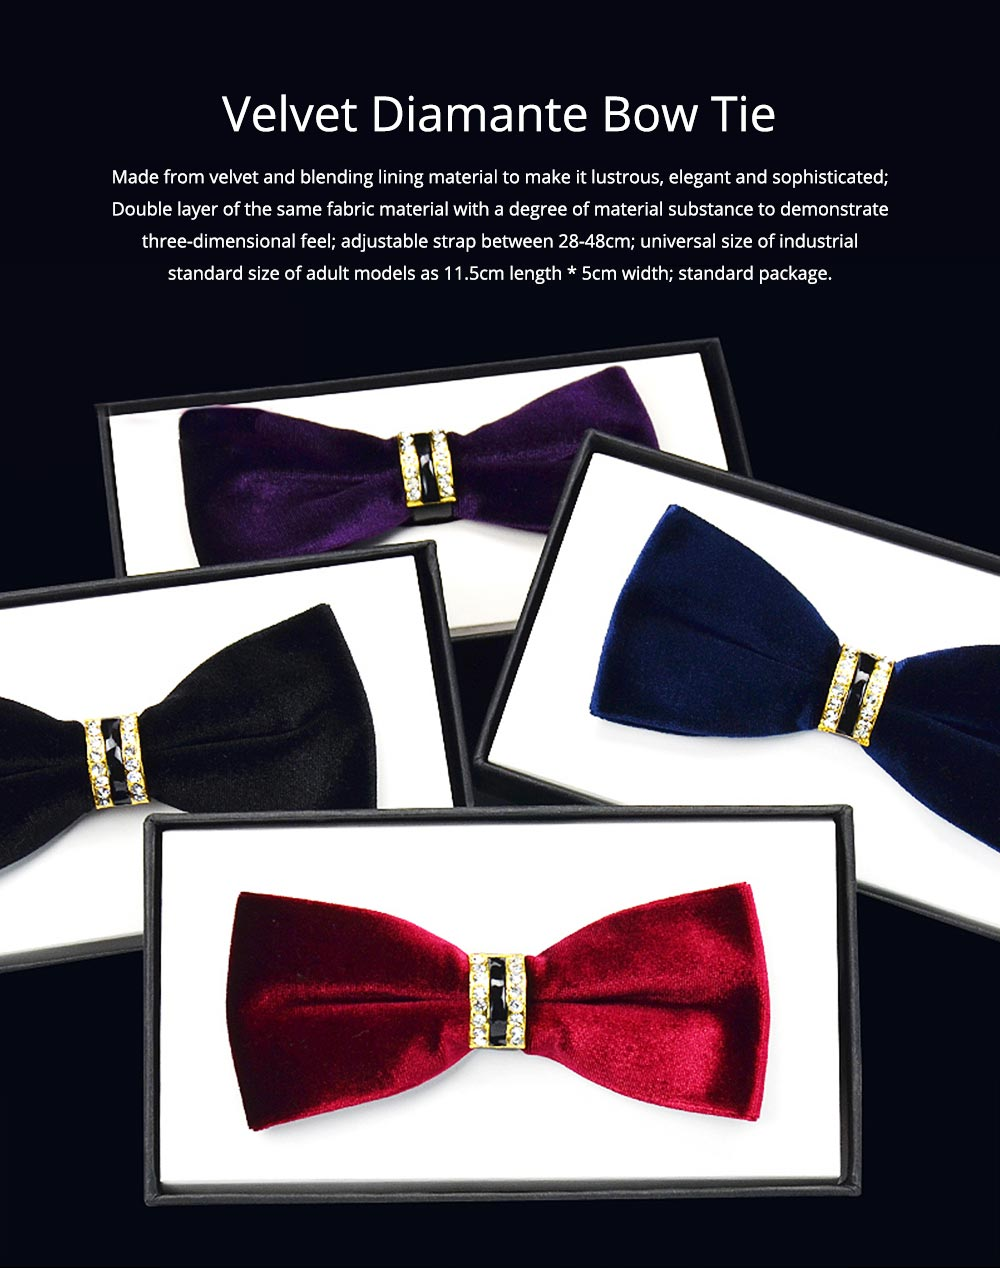 Velvet Diamante Bow Tie for Bridegroom Wedding Business Suit Bow Tie Fashionable Elviro Tie Groomsman Used Brand Diamante Tie 0